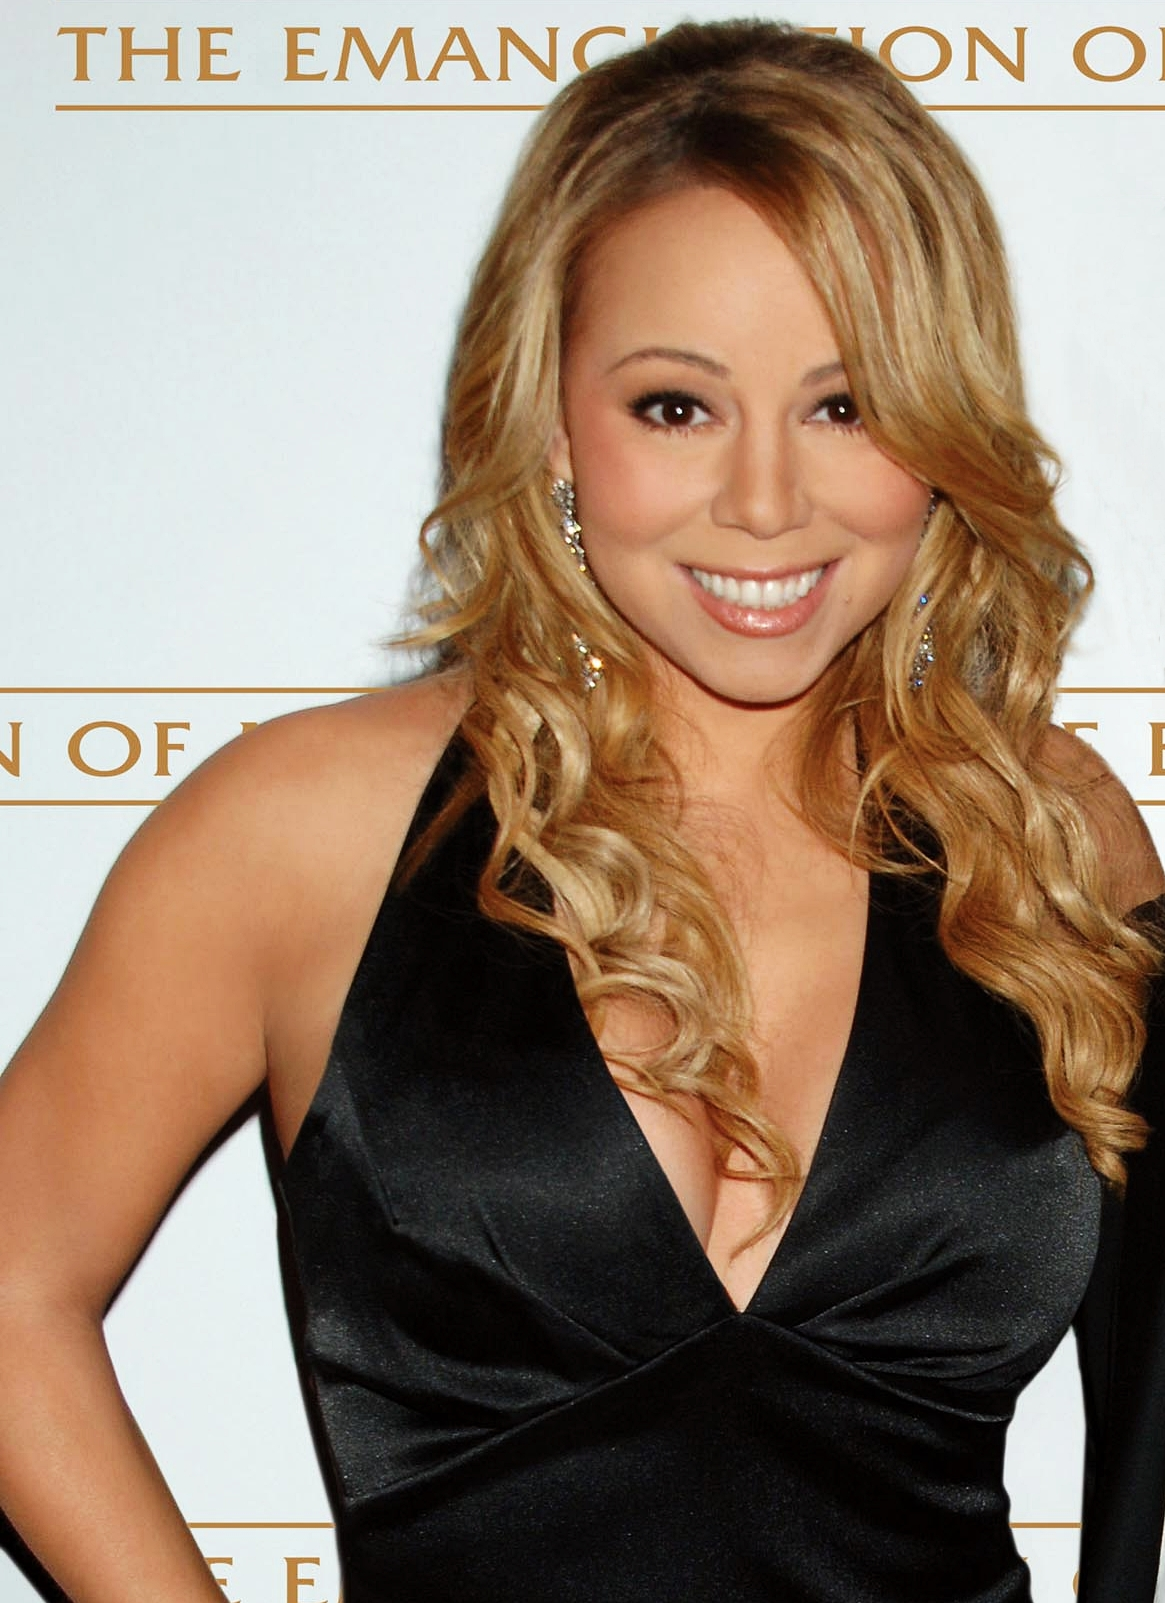 http://upload.wikimedia.org/wikipedia/commons/0/07/MAriah_Carey_2005.jpg